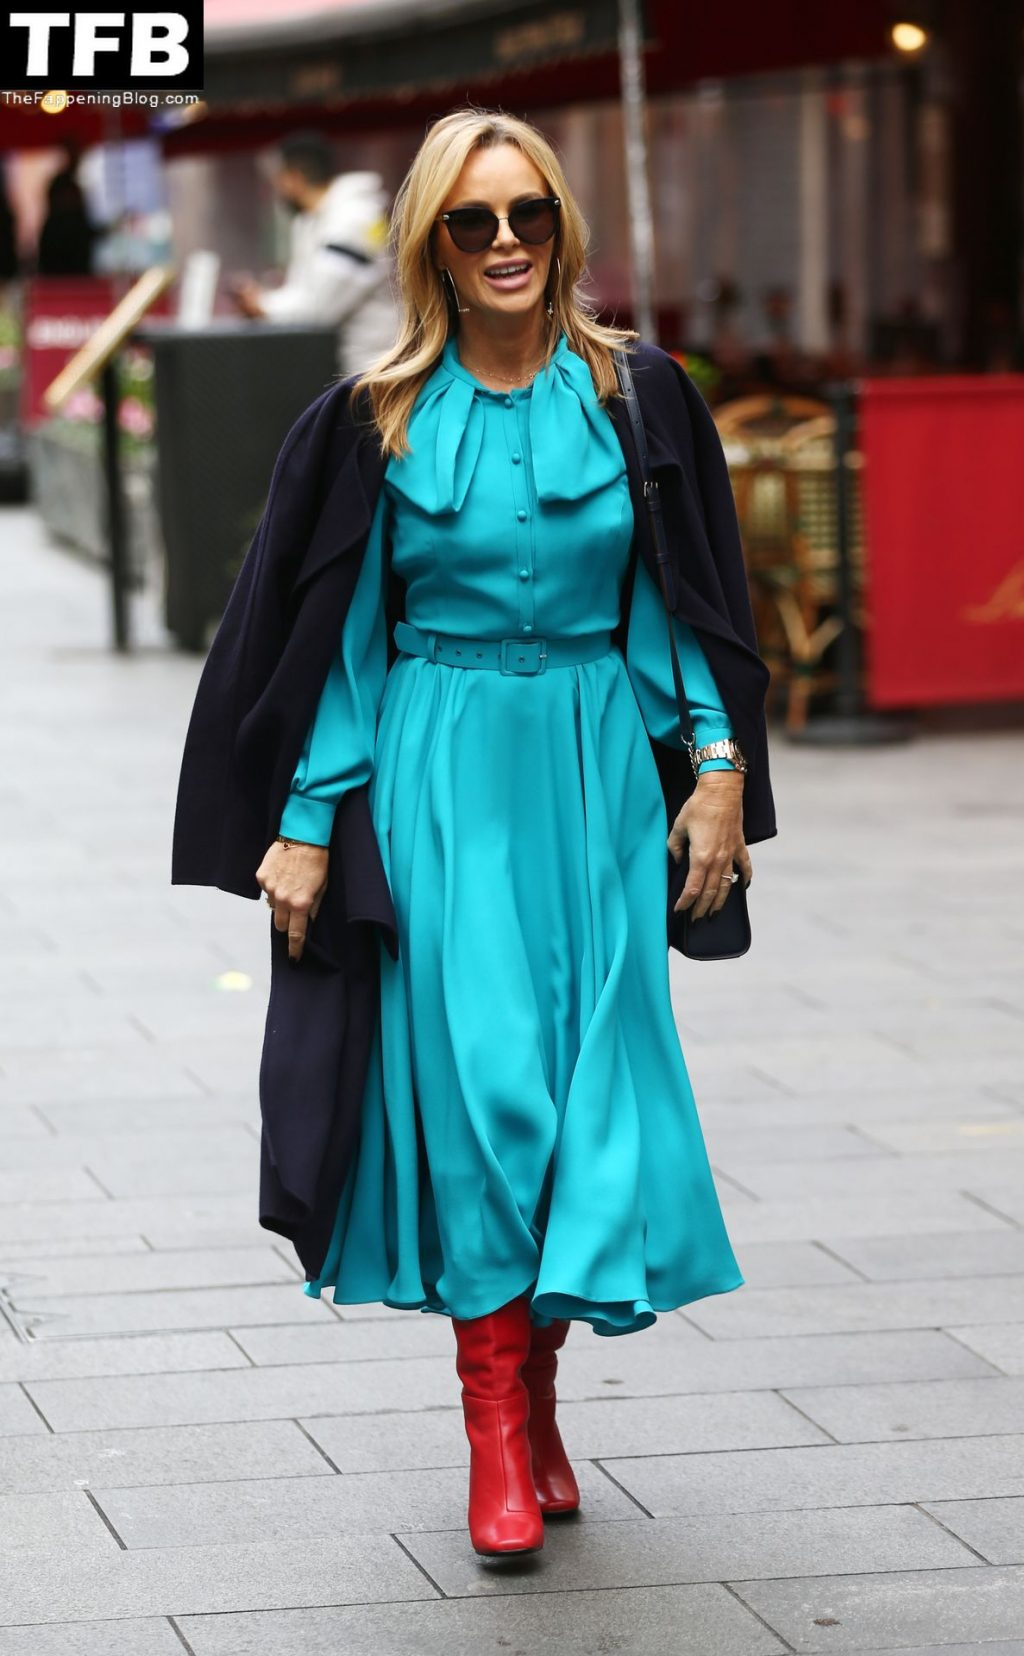 Amanda Holden is Spotted at Global Studios (71 Photos)